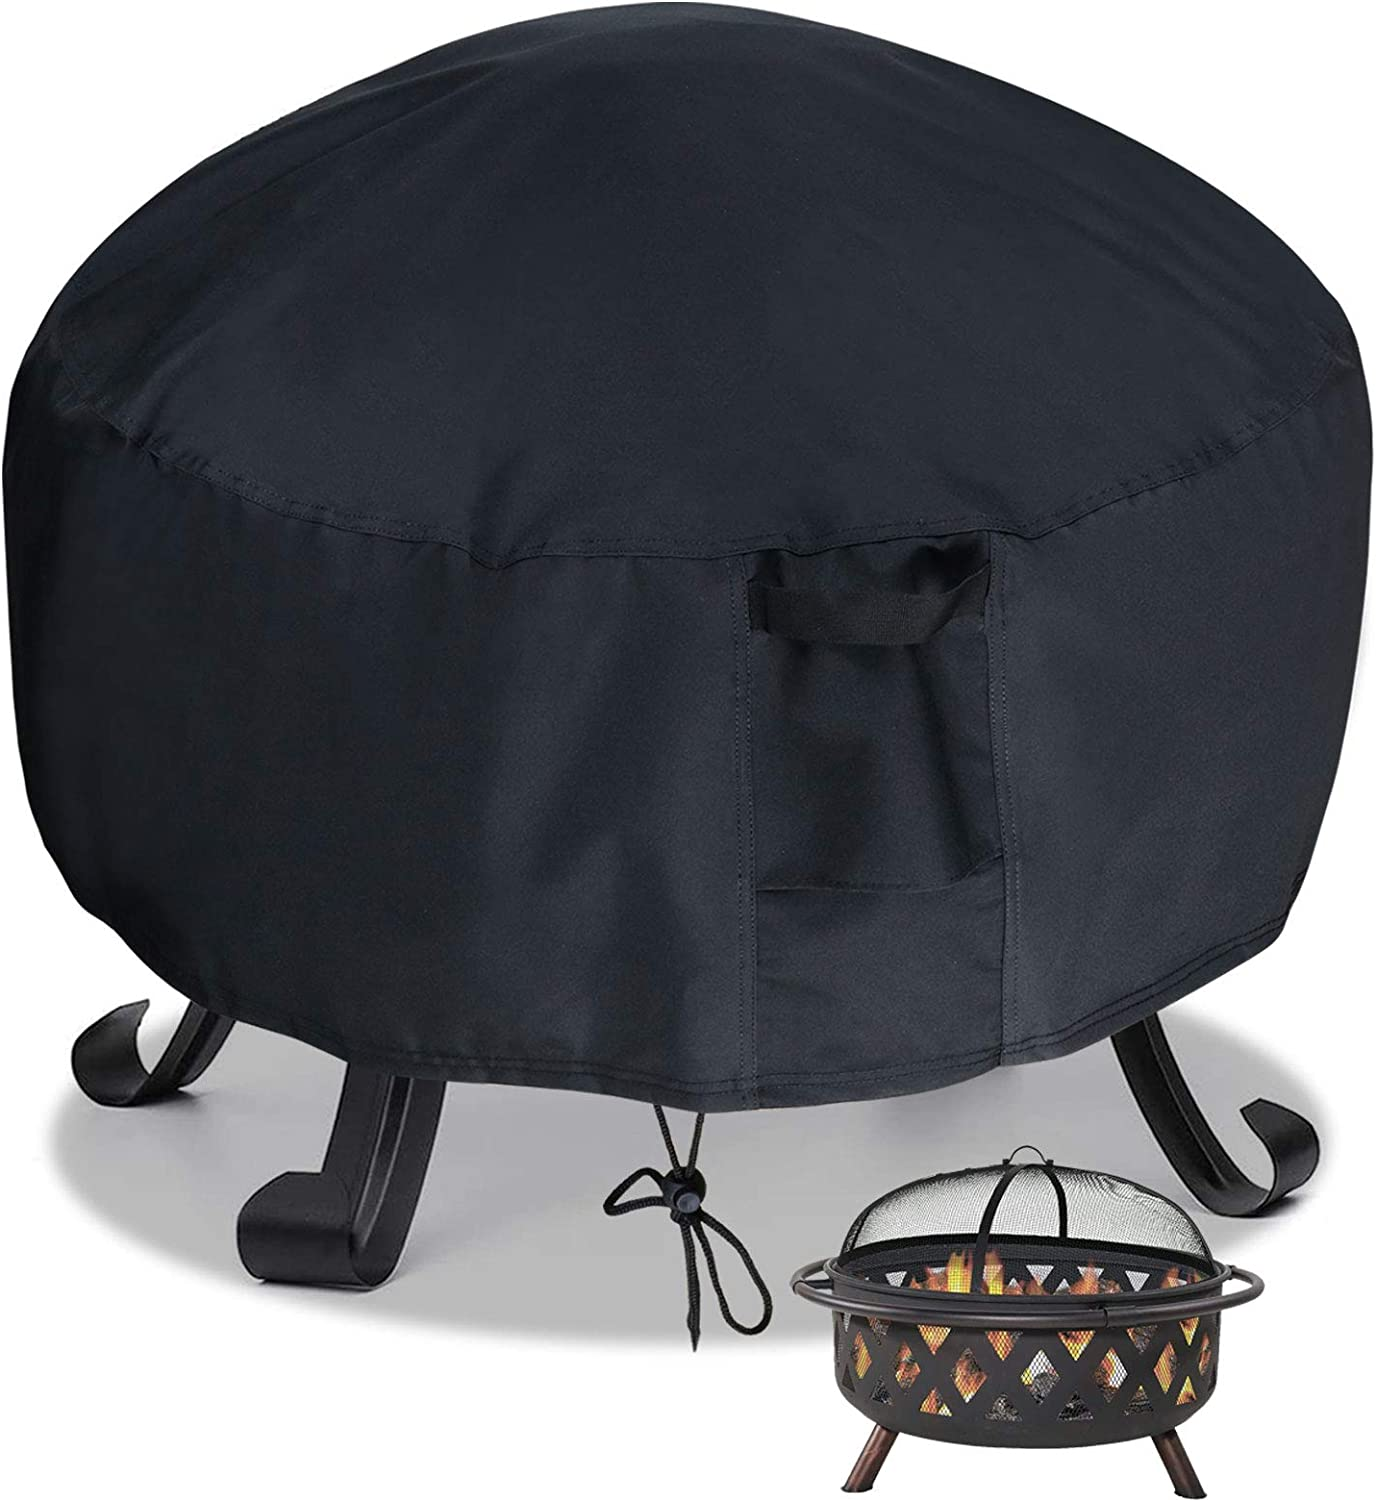 Saking Waterproof Fire Pit Cover OFFicial shop Round 30 Heavy 2021 spring and summer new 600D 12 inch - x